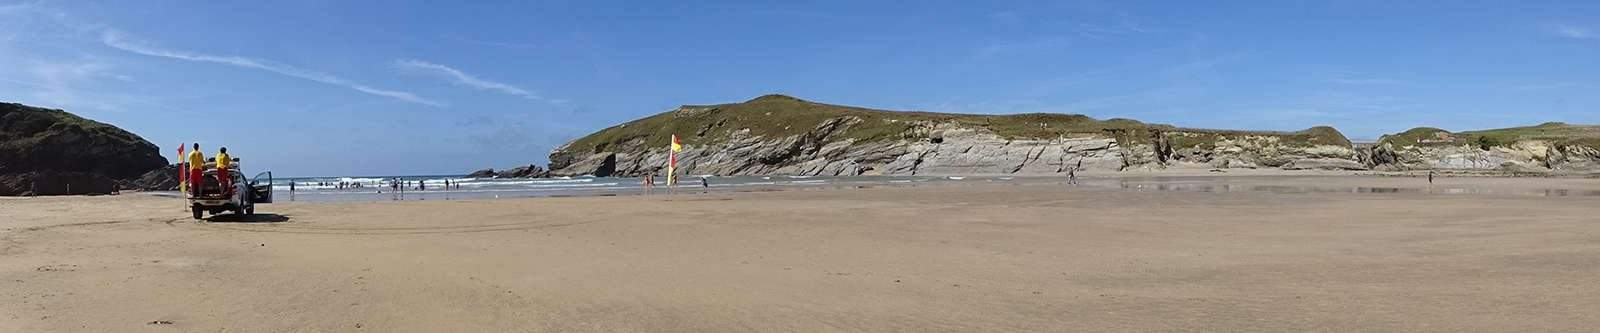 Porth beach with lifeguards